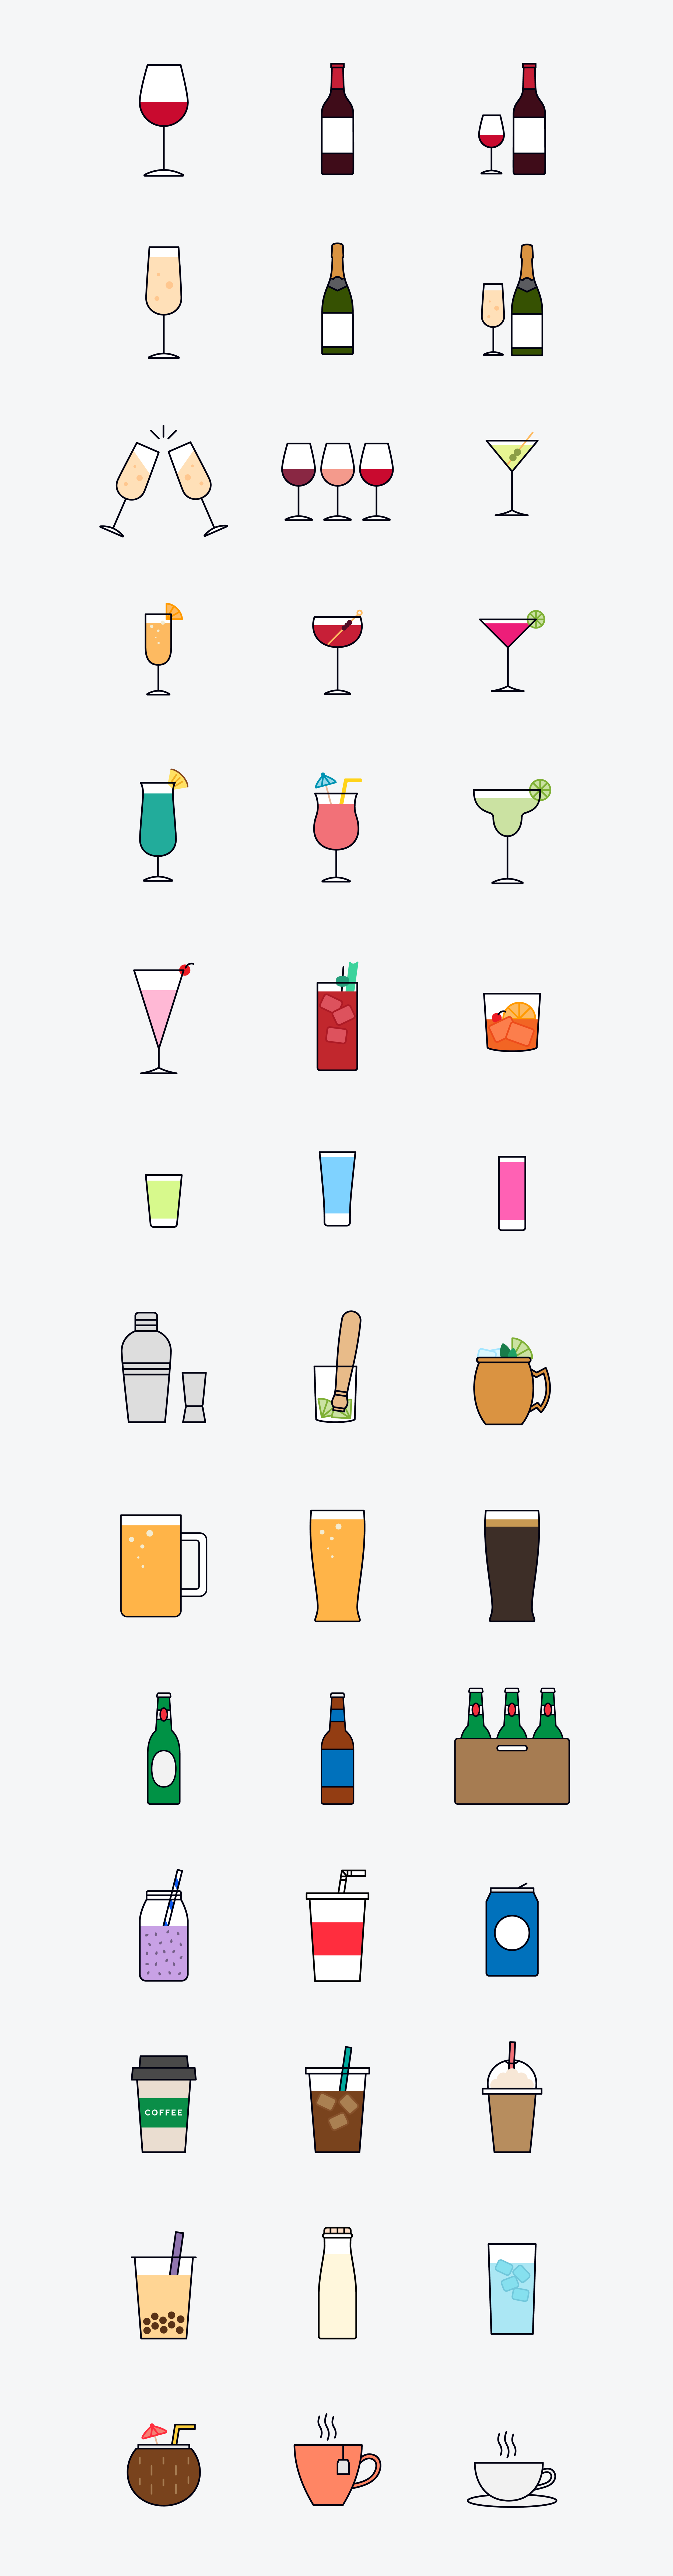 drinks-greybg.png